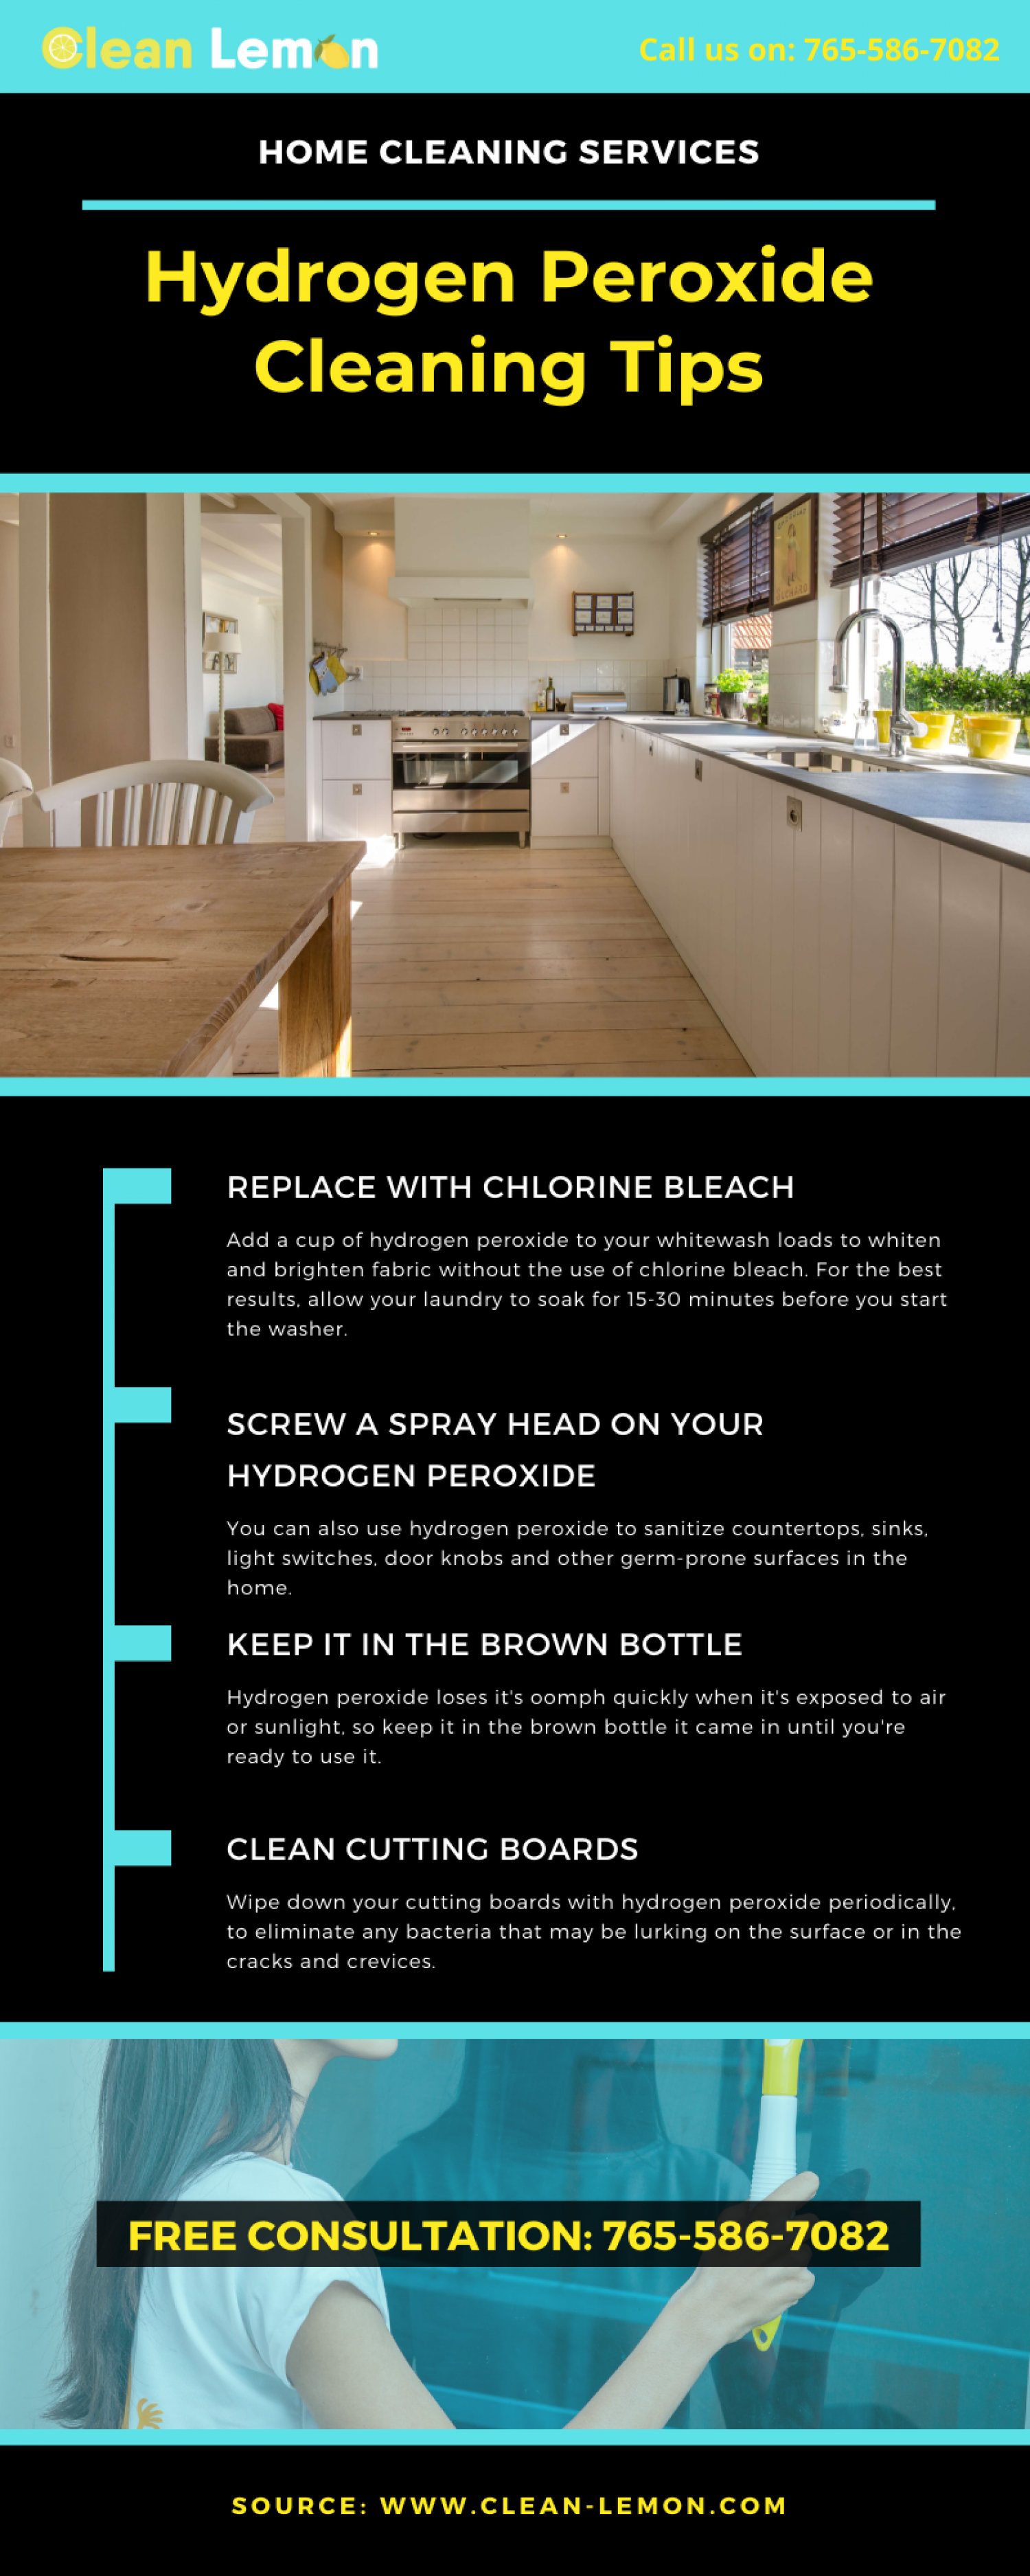 Hydrogen Peroxide Cleaning Tips Infographic